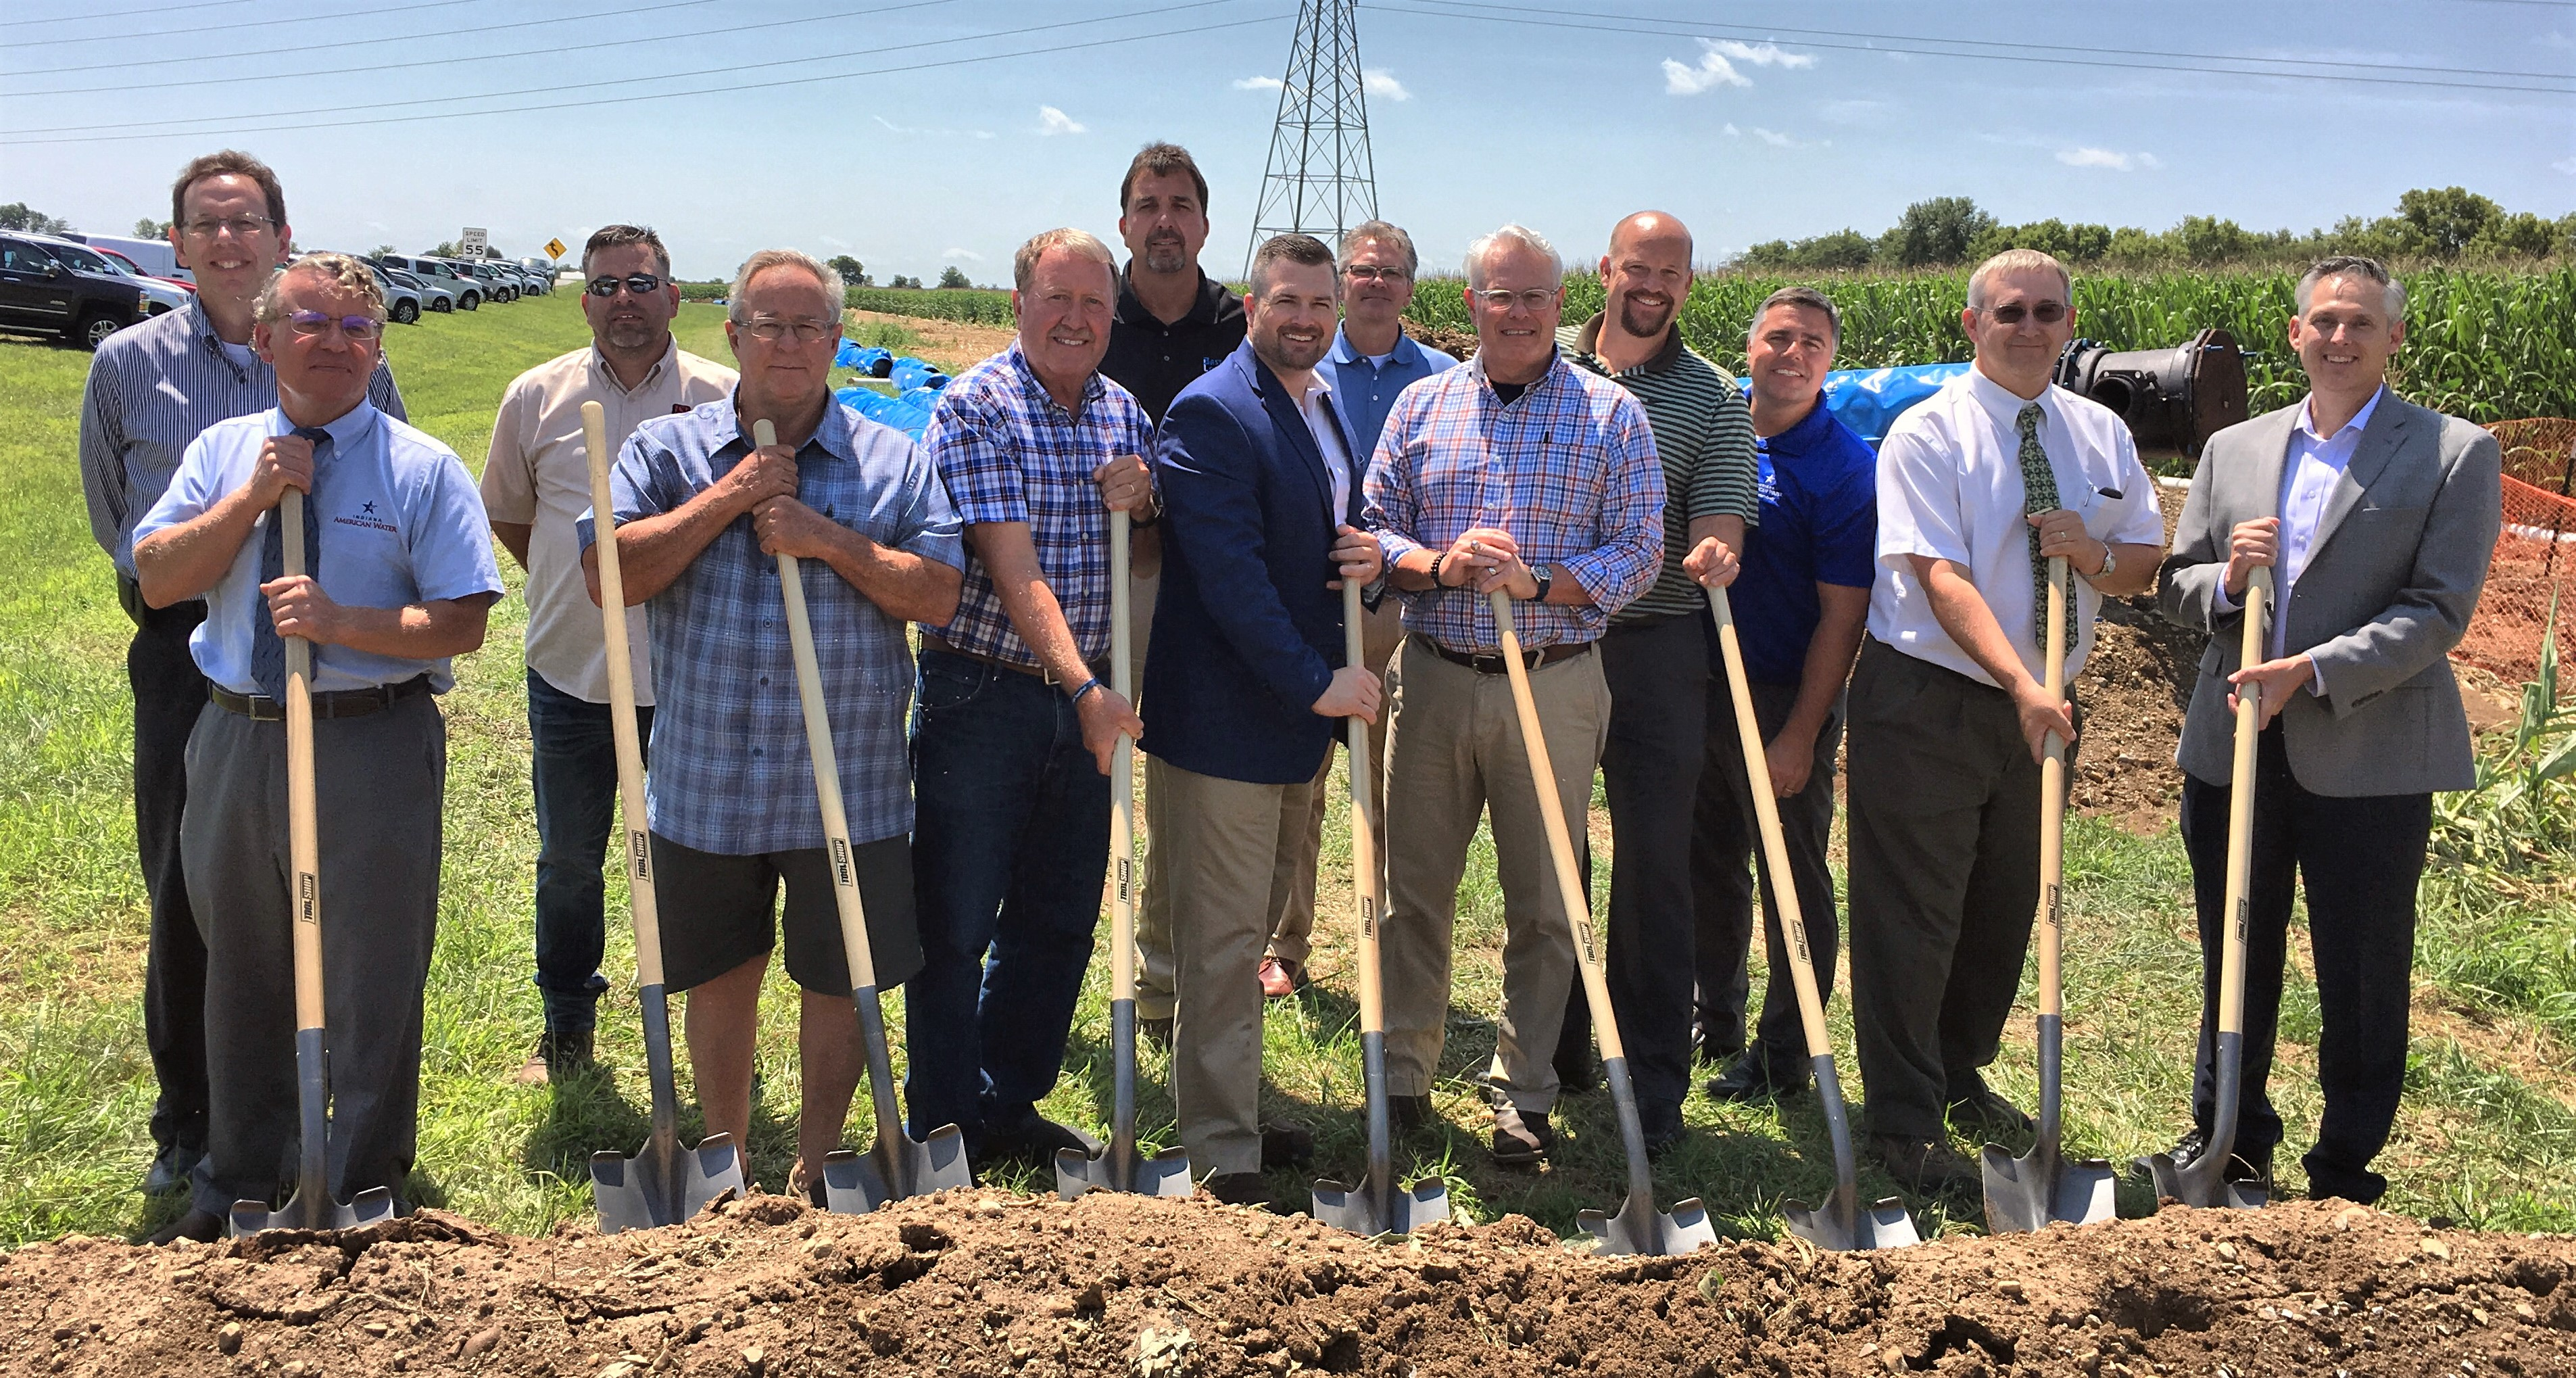 Indiana American Water Breaks Ground on Water System Infrastructure Serving Shelbyville, Ind.